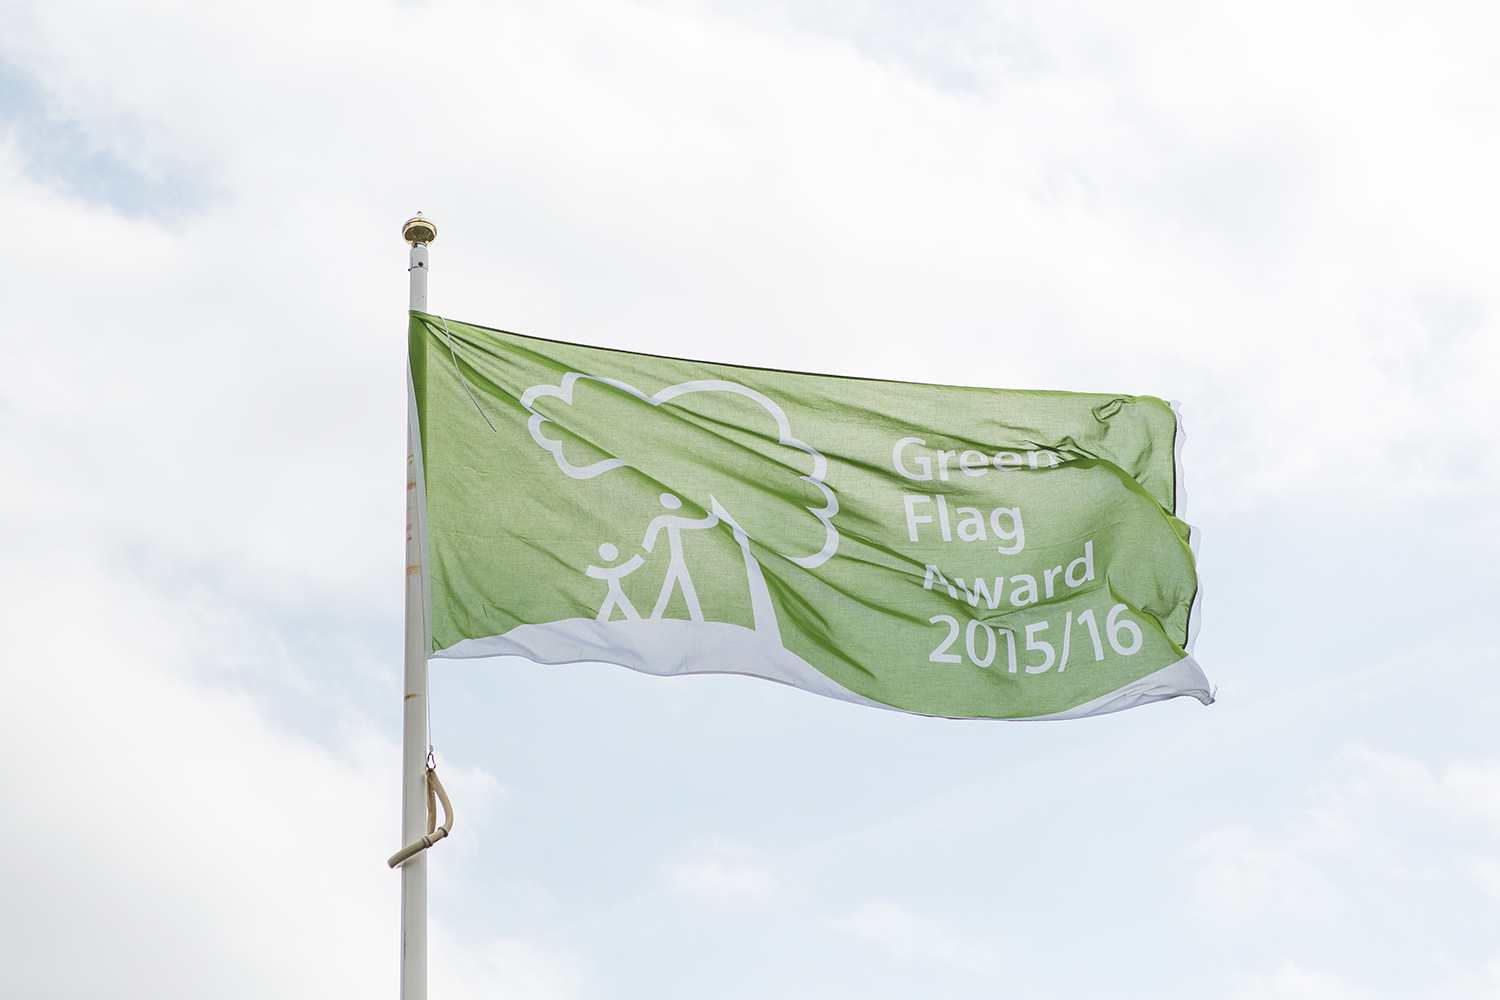 An image of a Green Flag